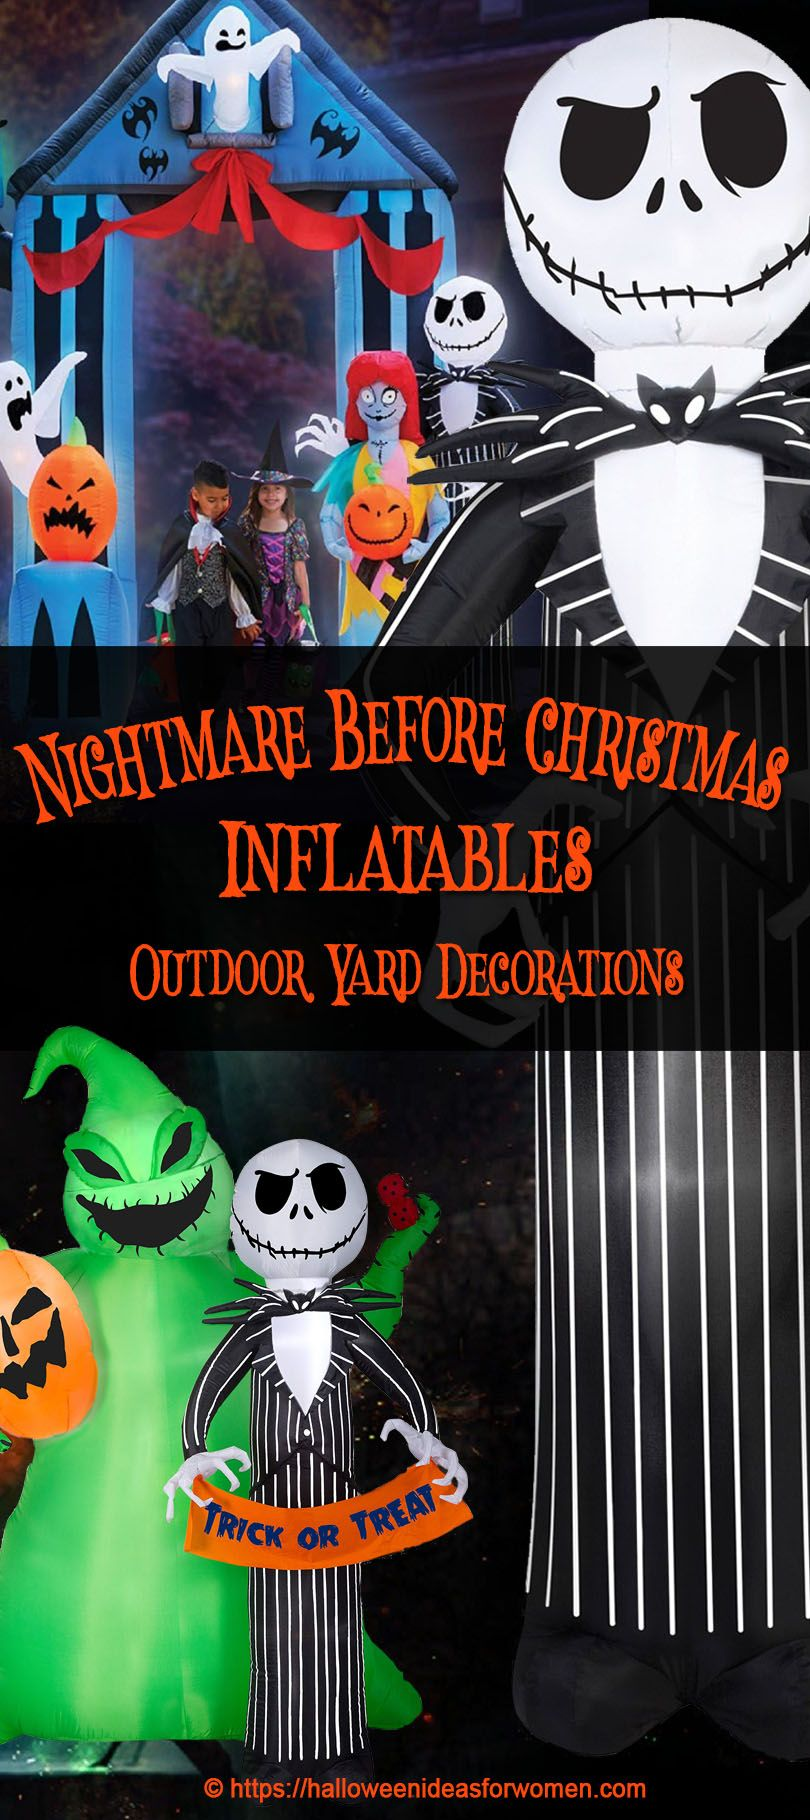 nightmare before christmas inflatables - Nightmare Before Christmas Inflatable Lawn Decorations